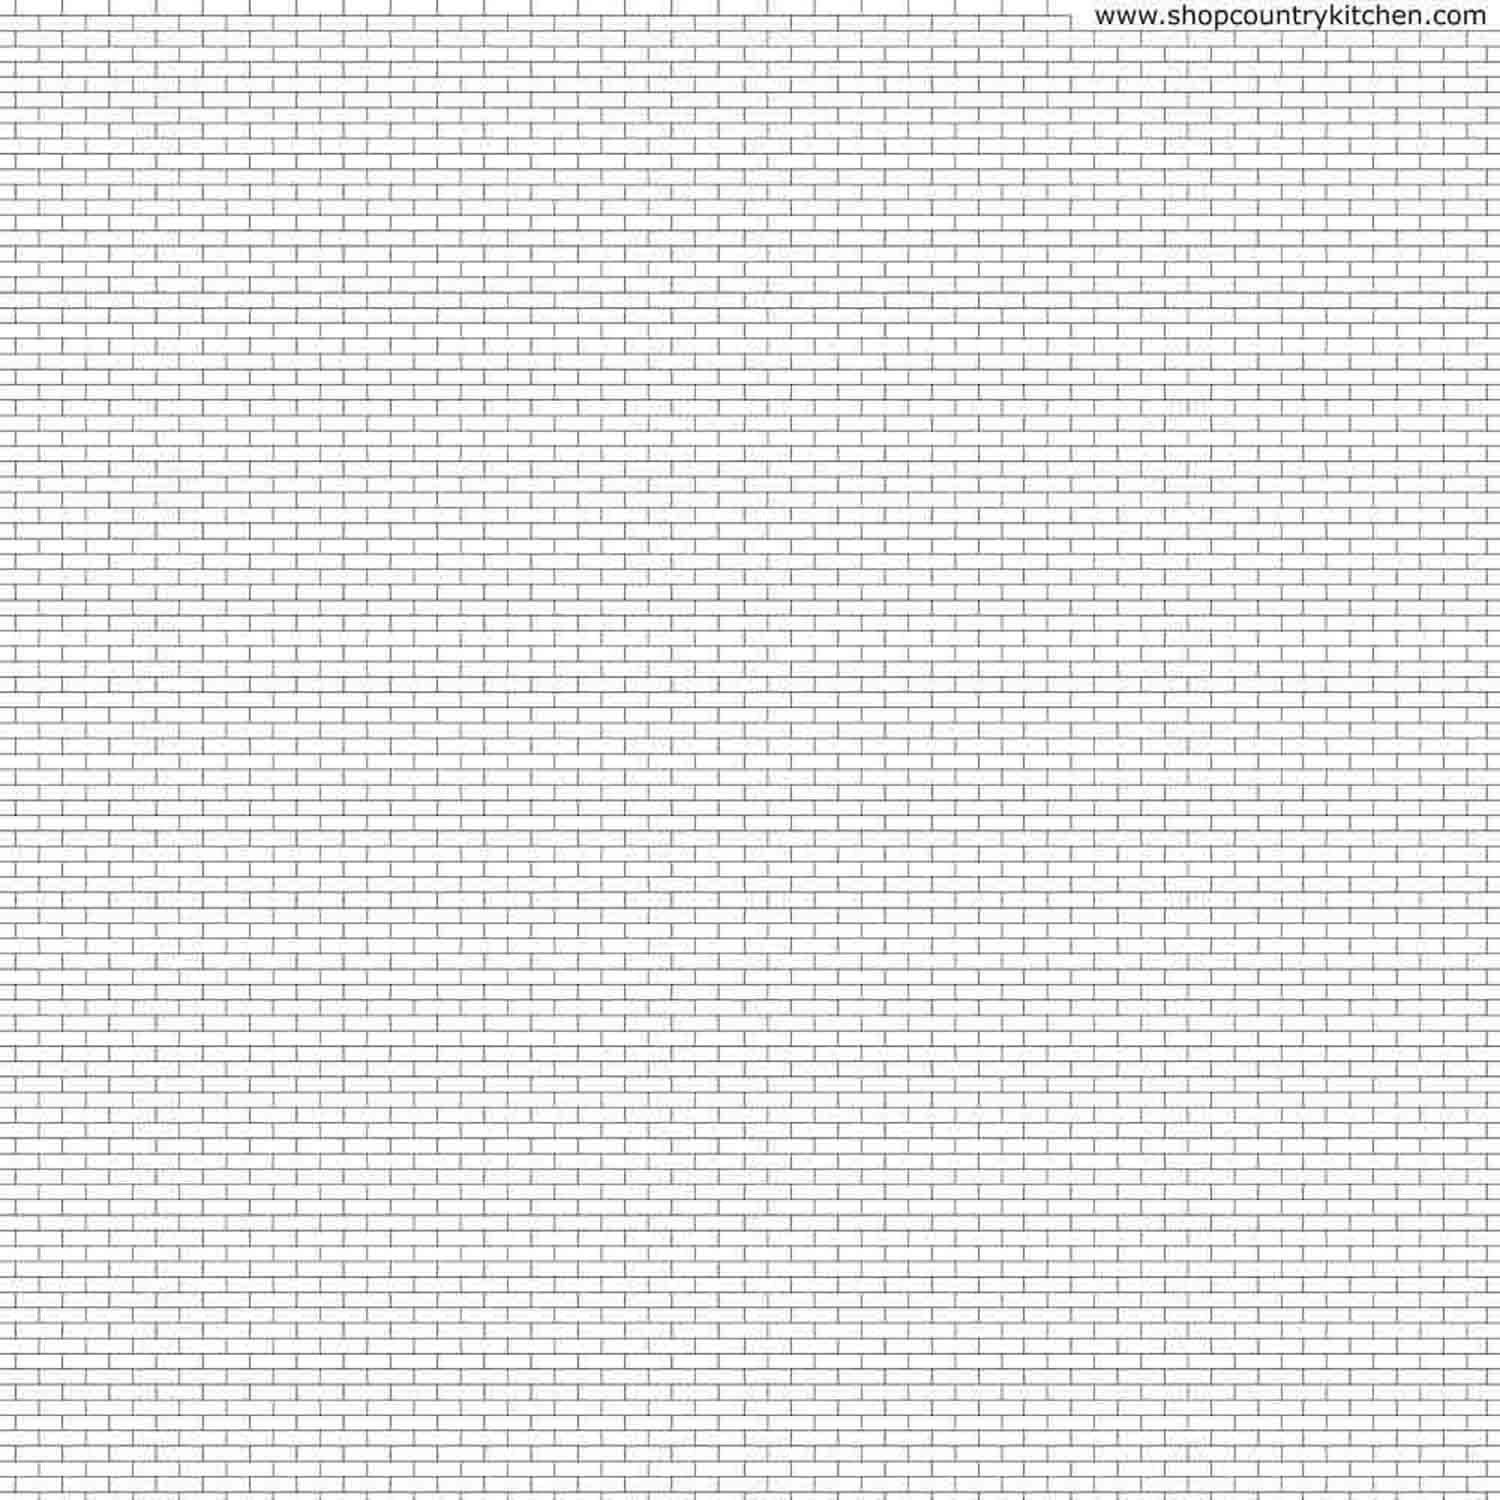 Brick Country Kitchen Texture Sheet 43 4703 Country